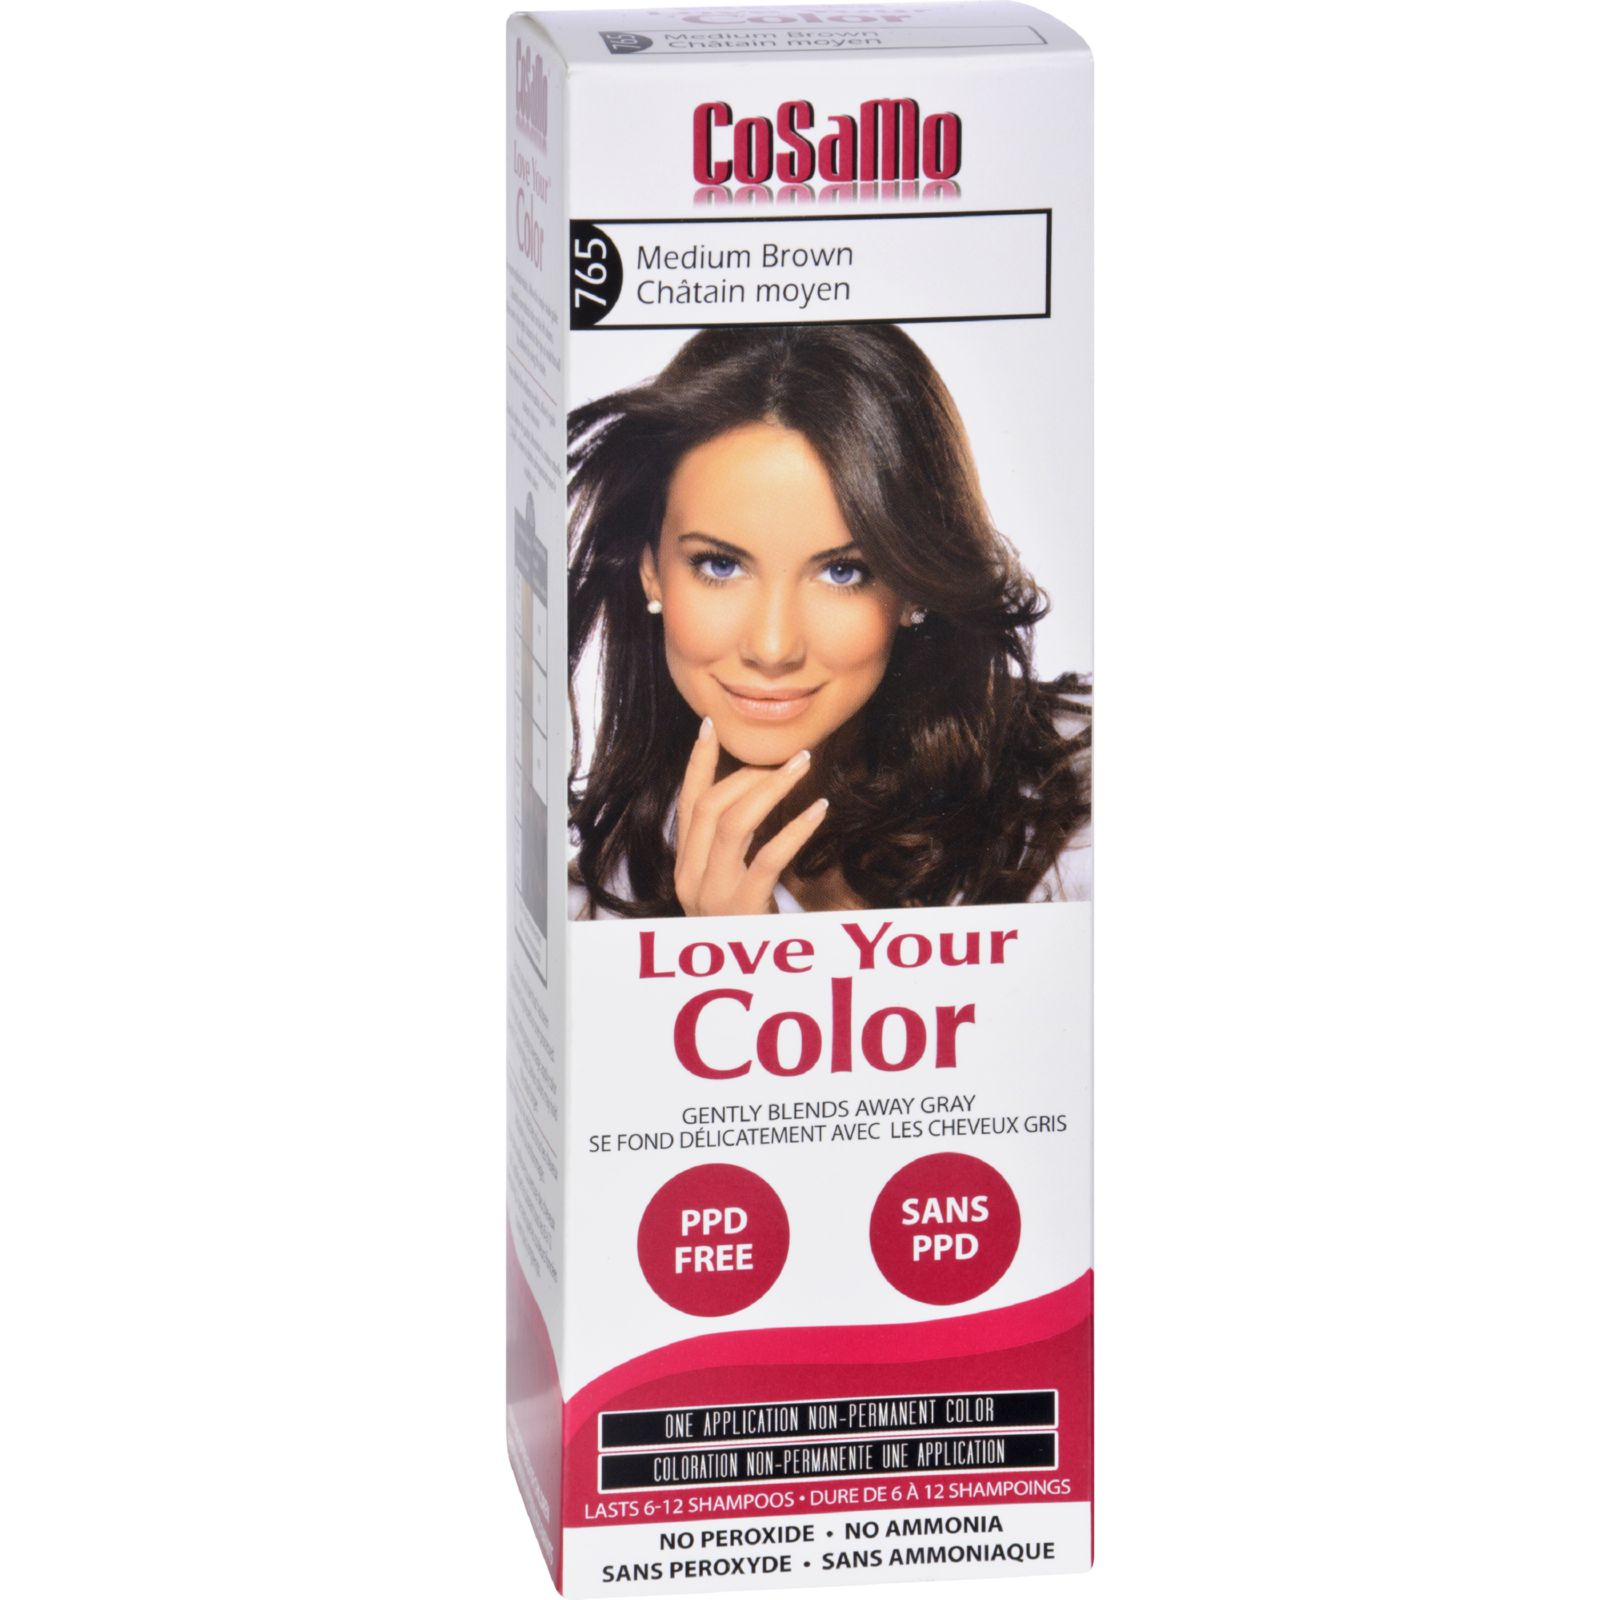 Love Your Color Hair Color - Cosamo - Non Permanent - Medium Brown - 1 Ct